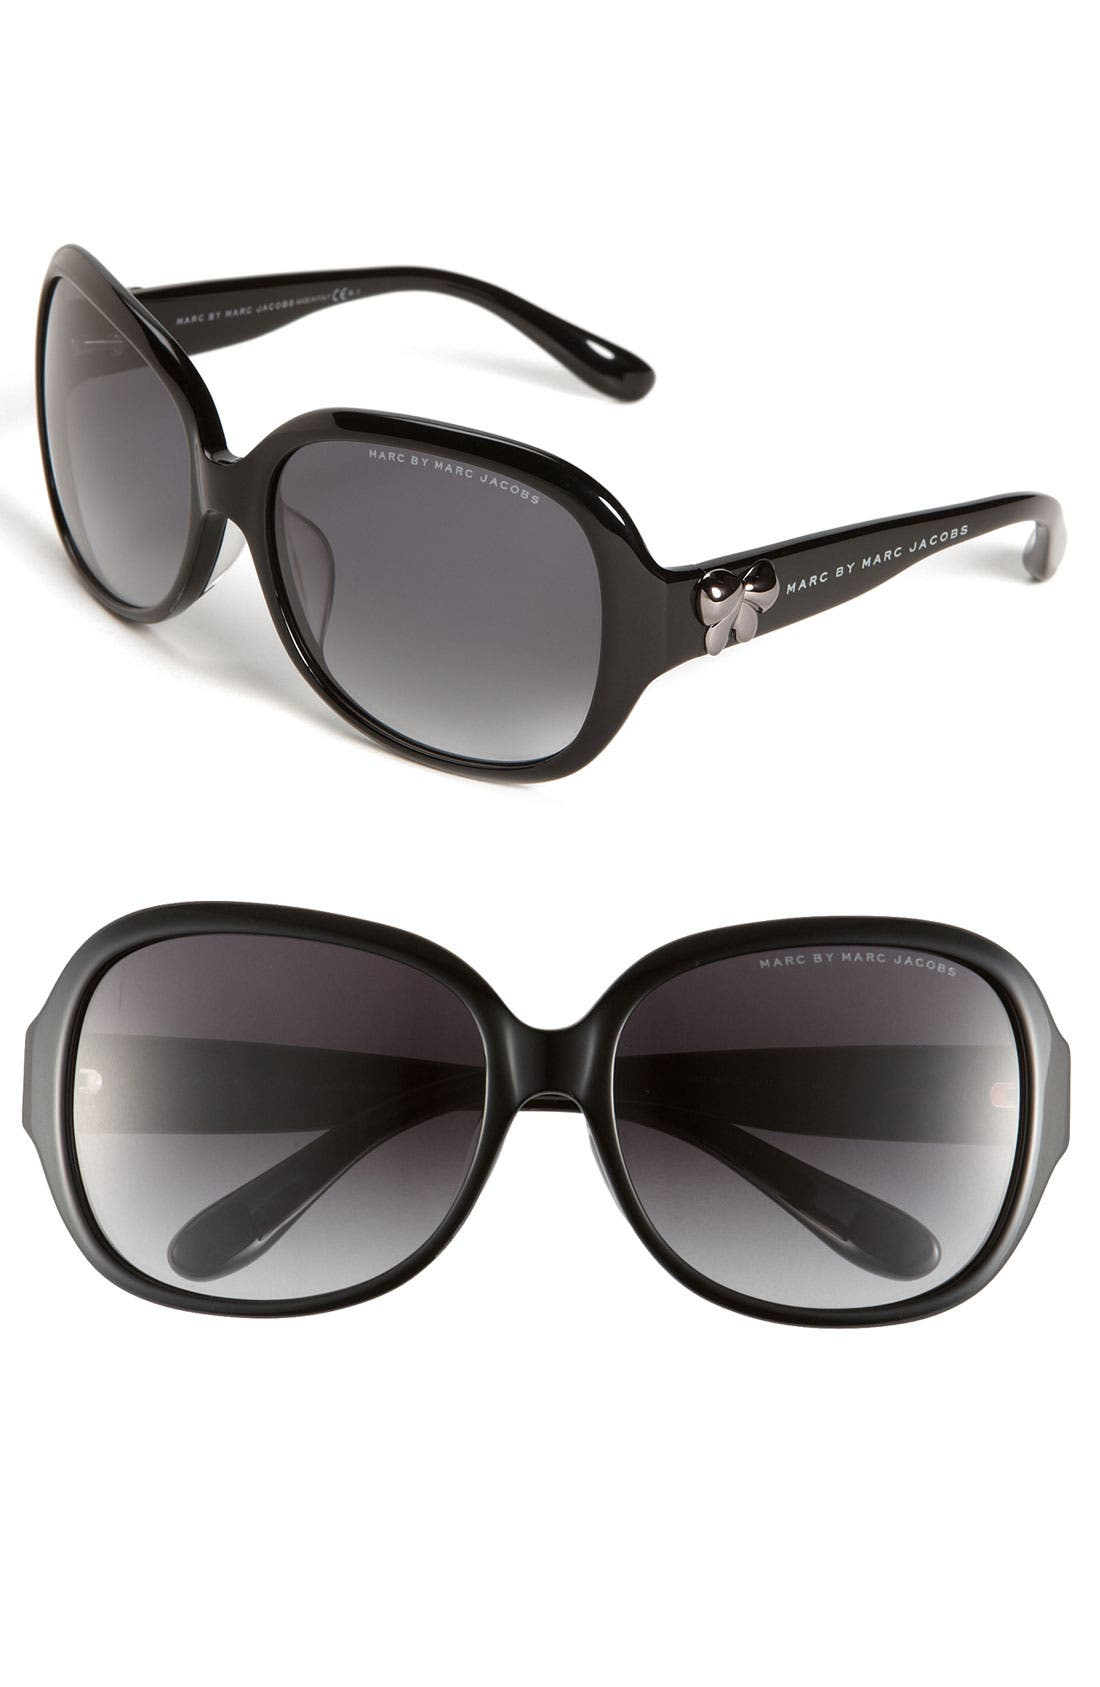 Alternate Image 1 Selected - MARC BY MARC JACOBS 'International Collection' 58mm Sunglasses